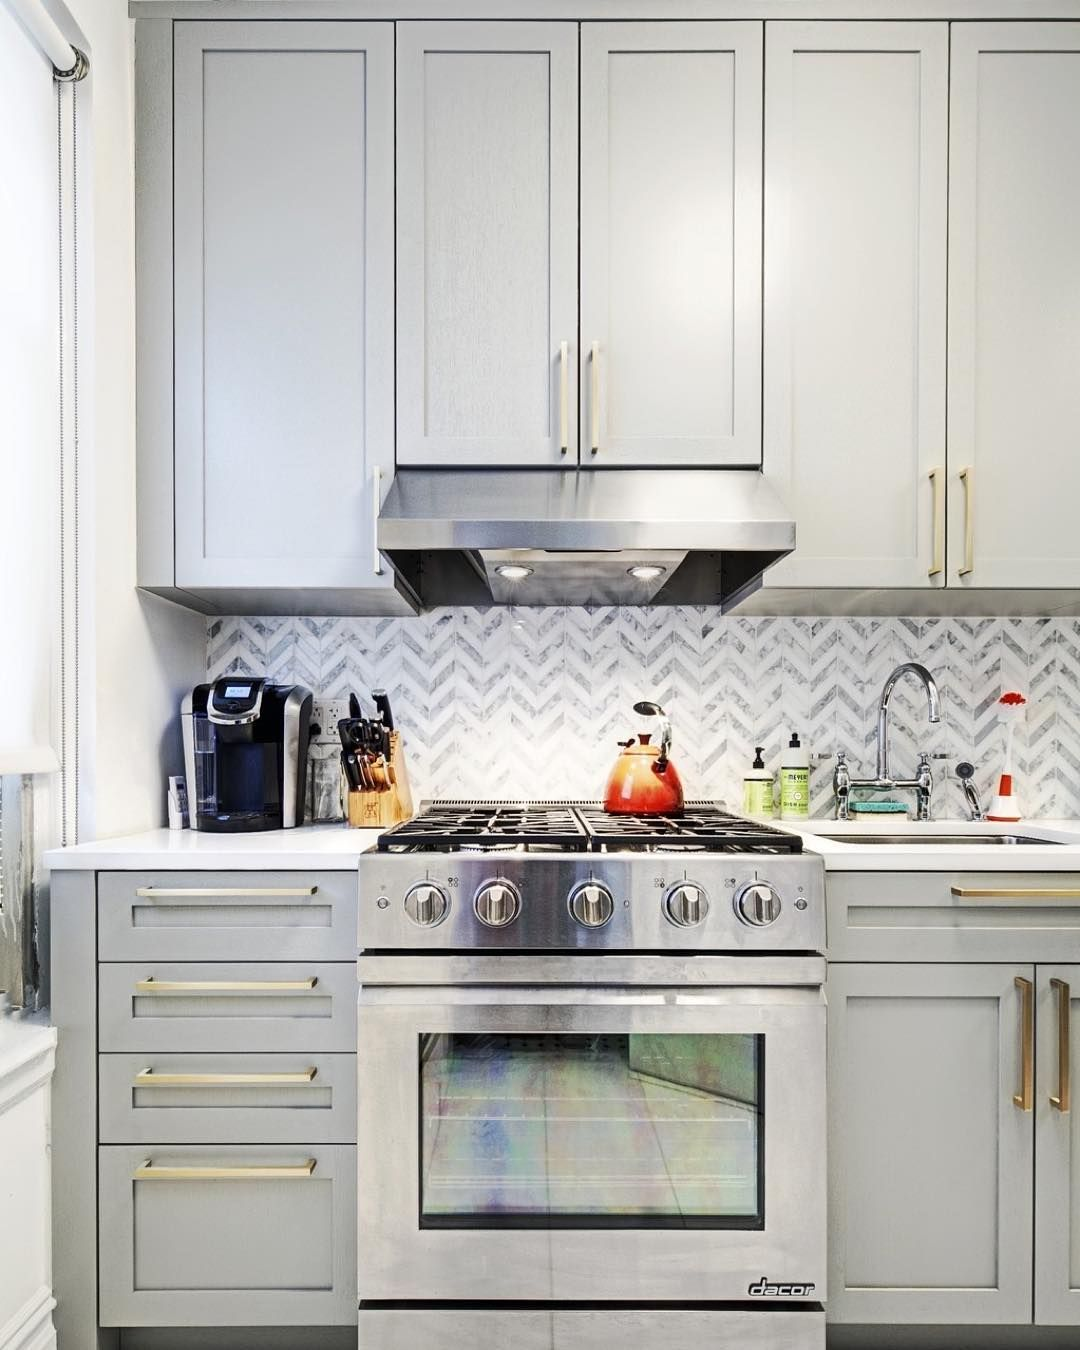 A Greenwichvillage Kitchen Renovation Plays With Contrasting